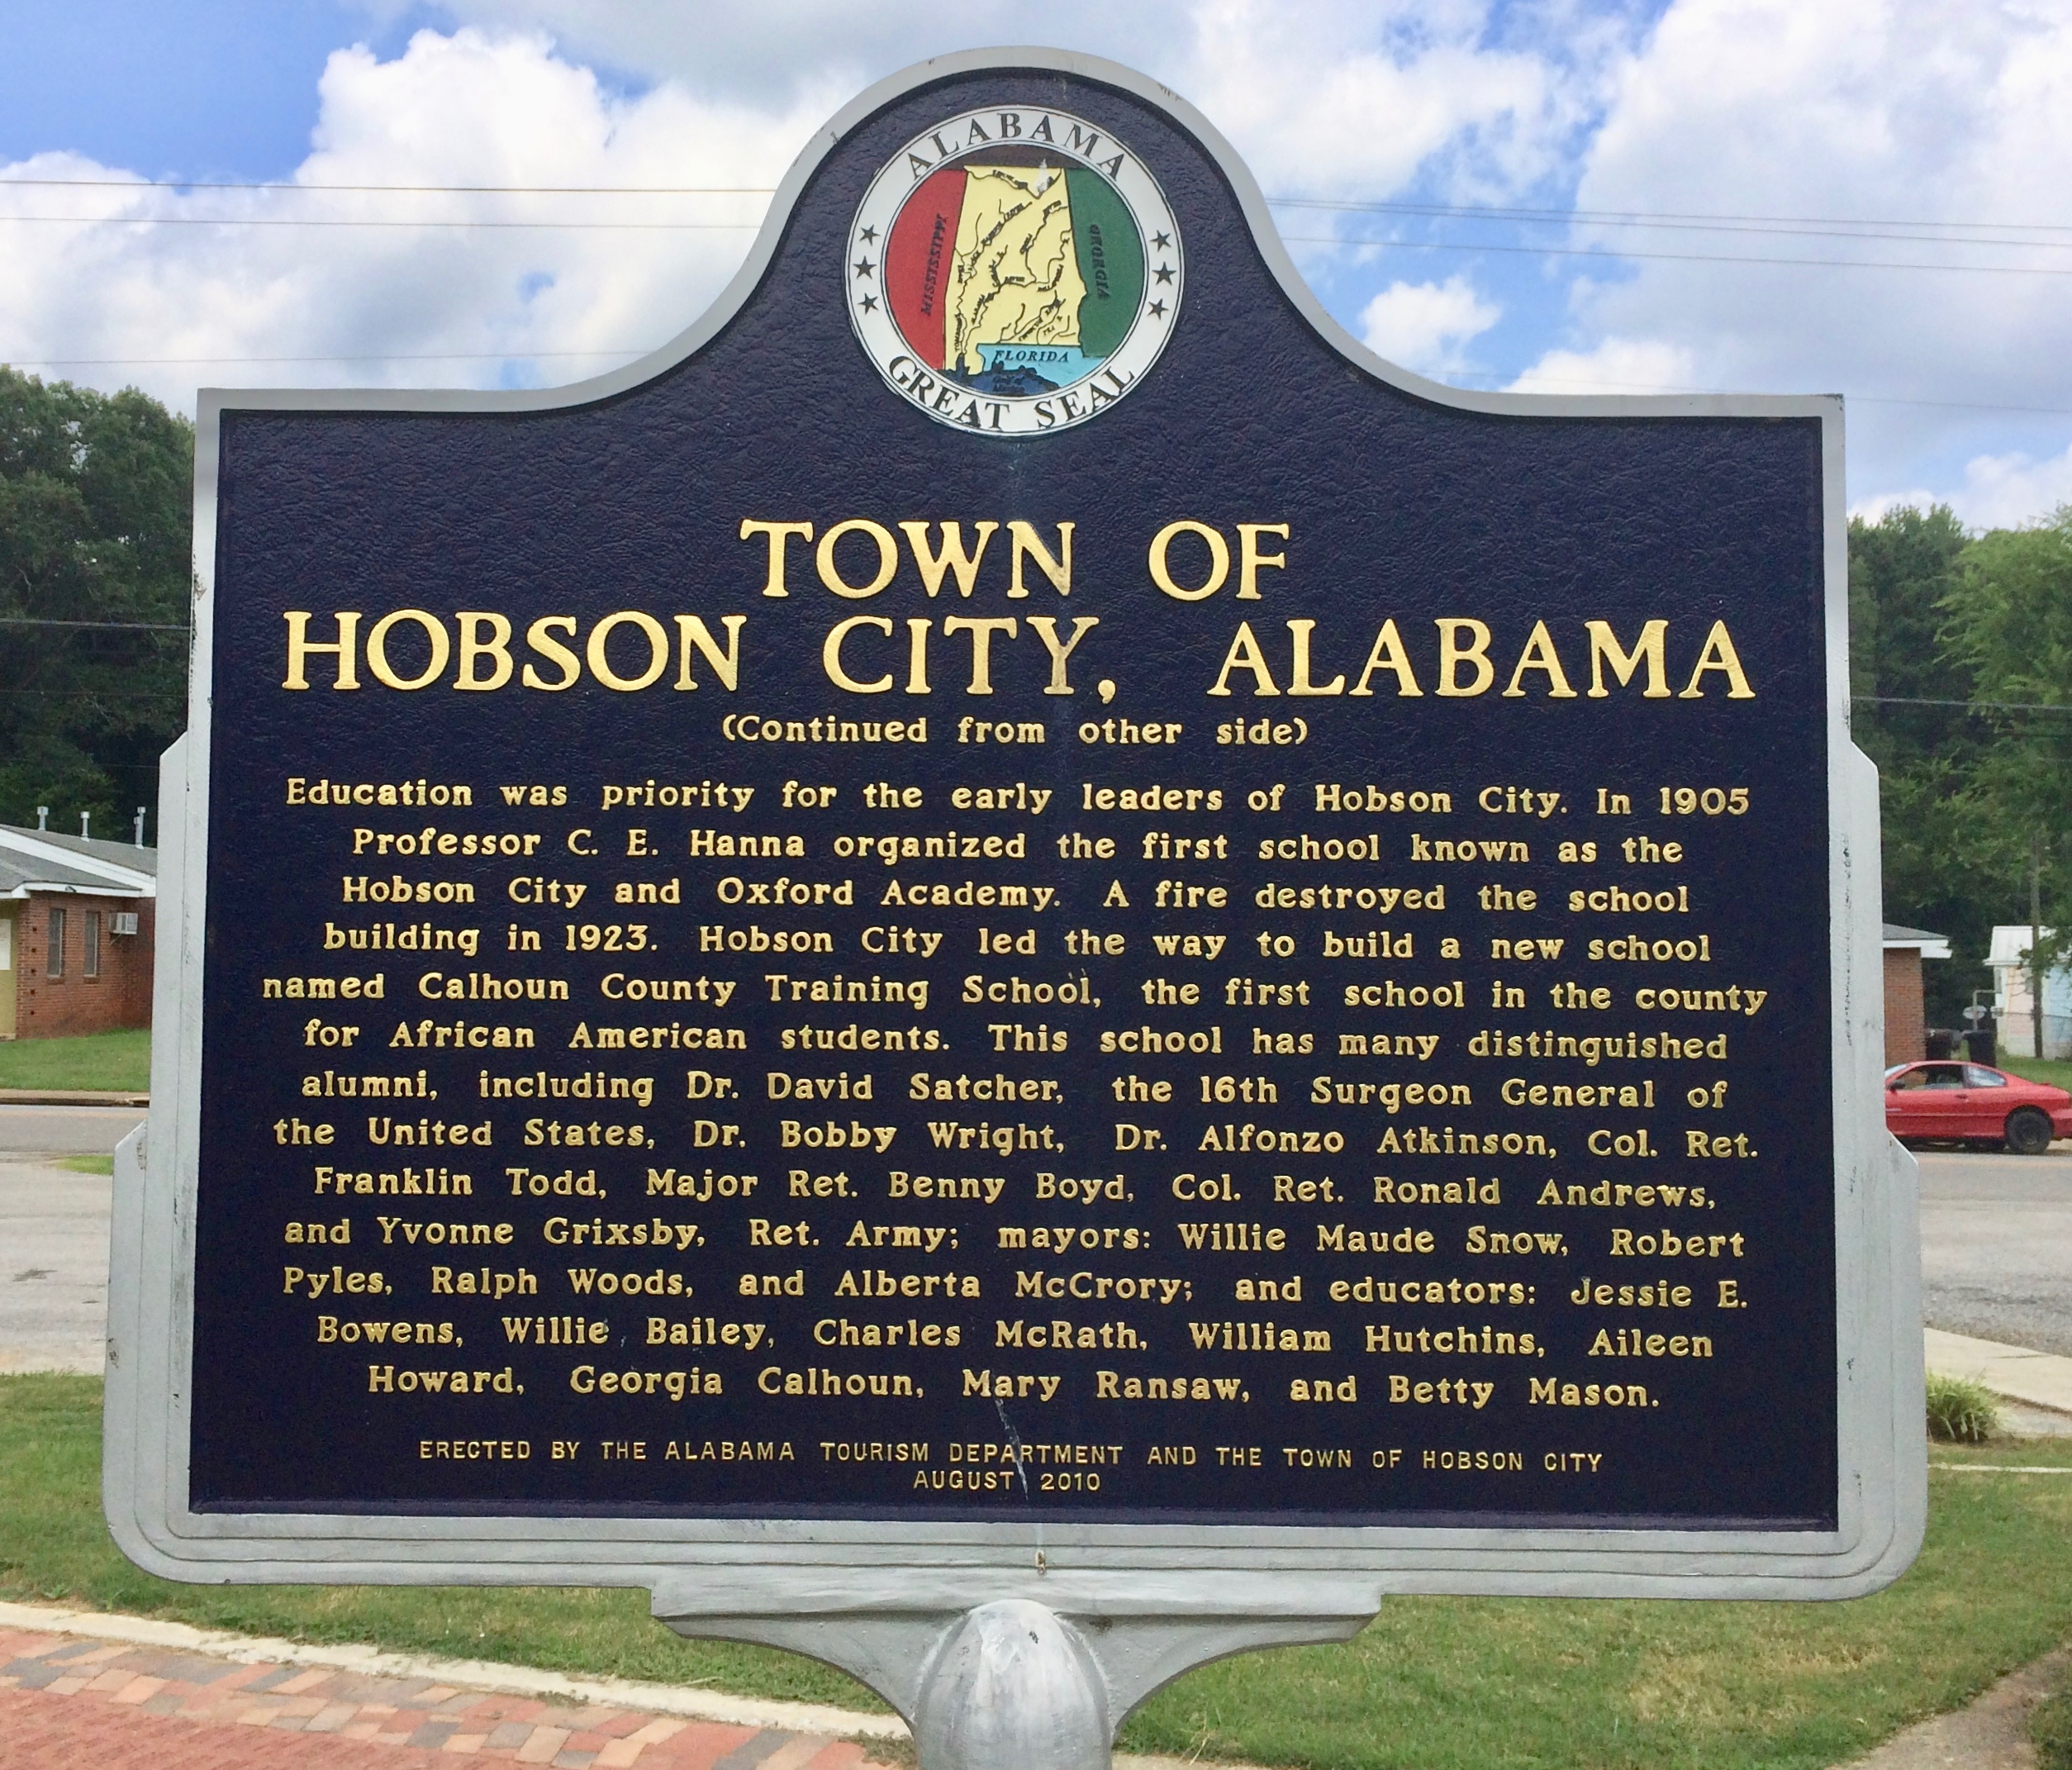 Town of Hobson City, Alabama Marker (rear)